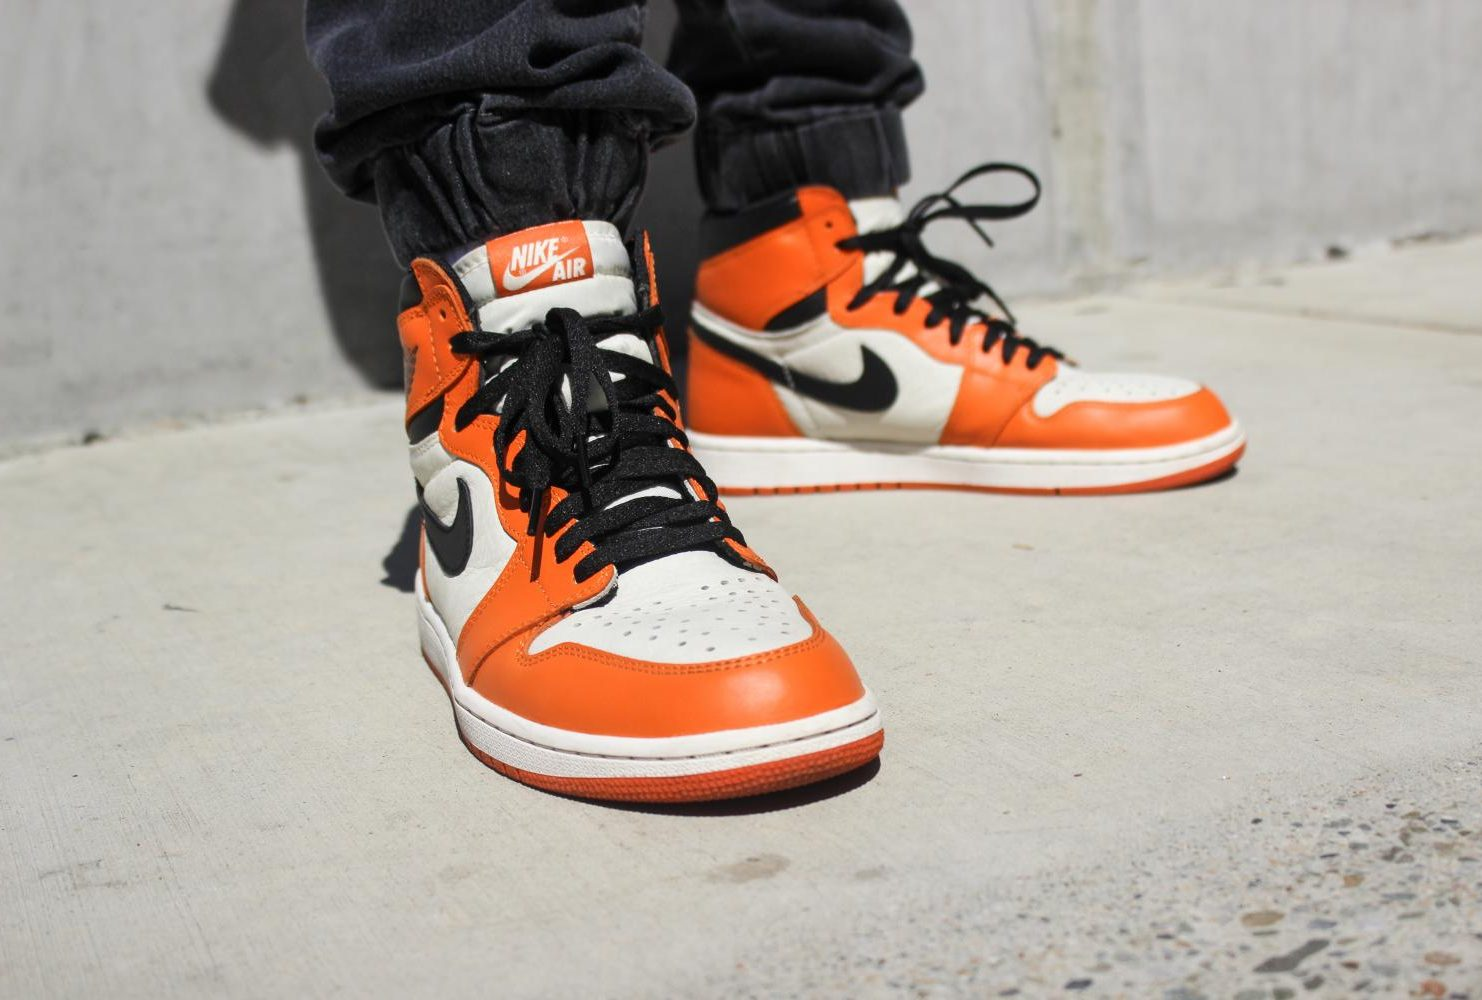 """I skipped all my classes when the off-whites came out, the whole day I just tried to get those…I was here [at ARC], I was just on my phone."""" – Sam Del Rio 